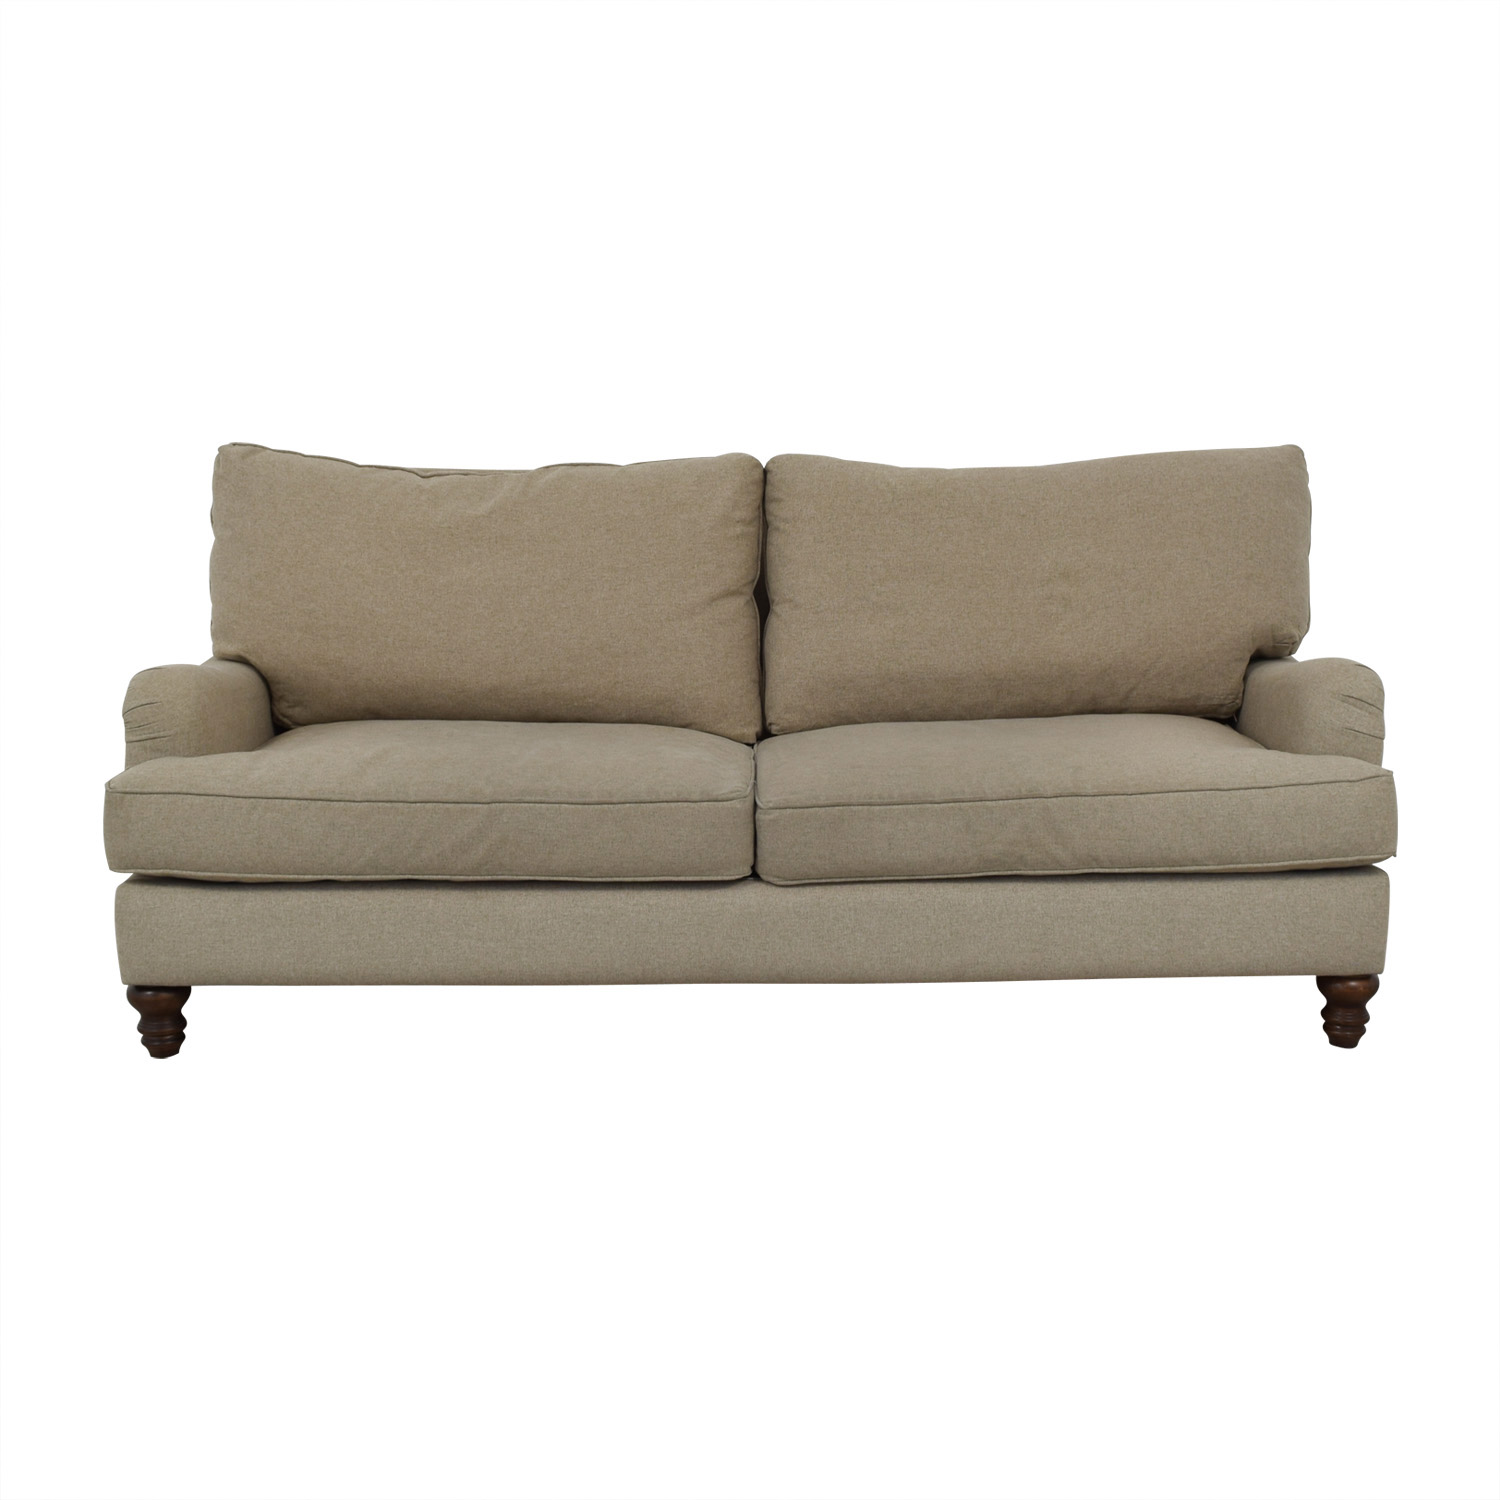 sectional sofa under 2000 couches for sale best quality review home decor